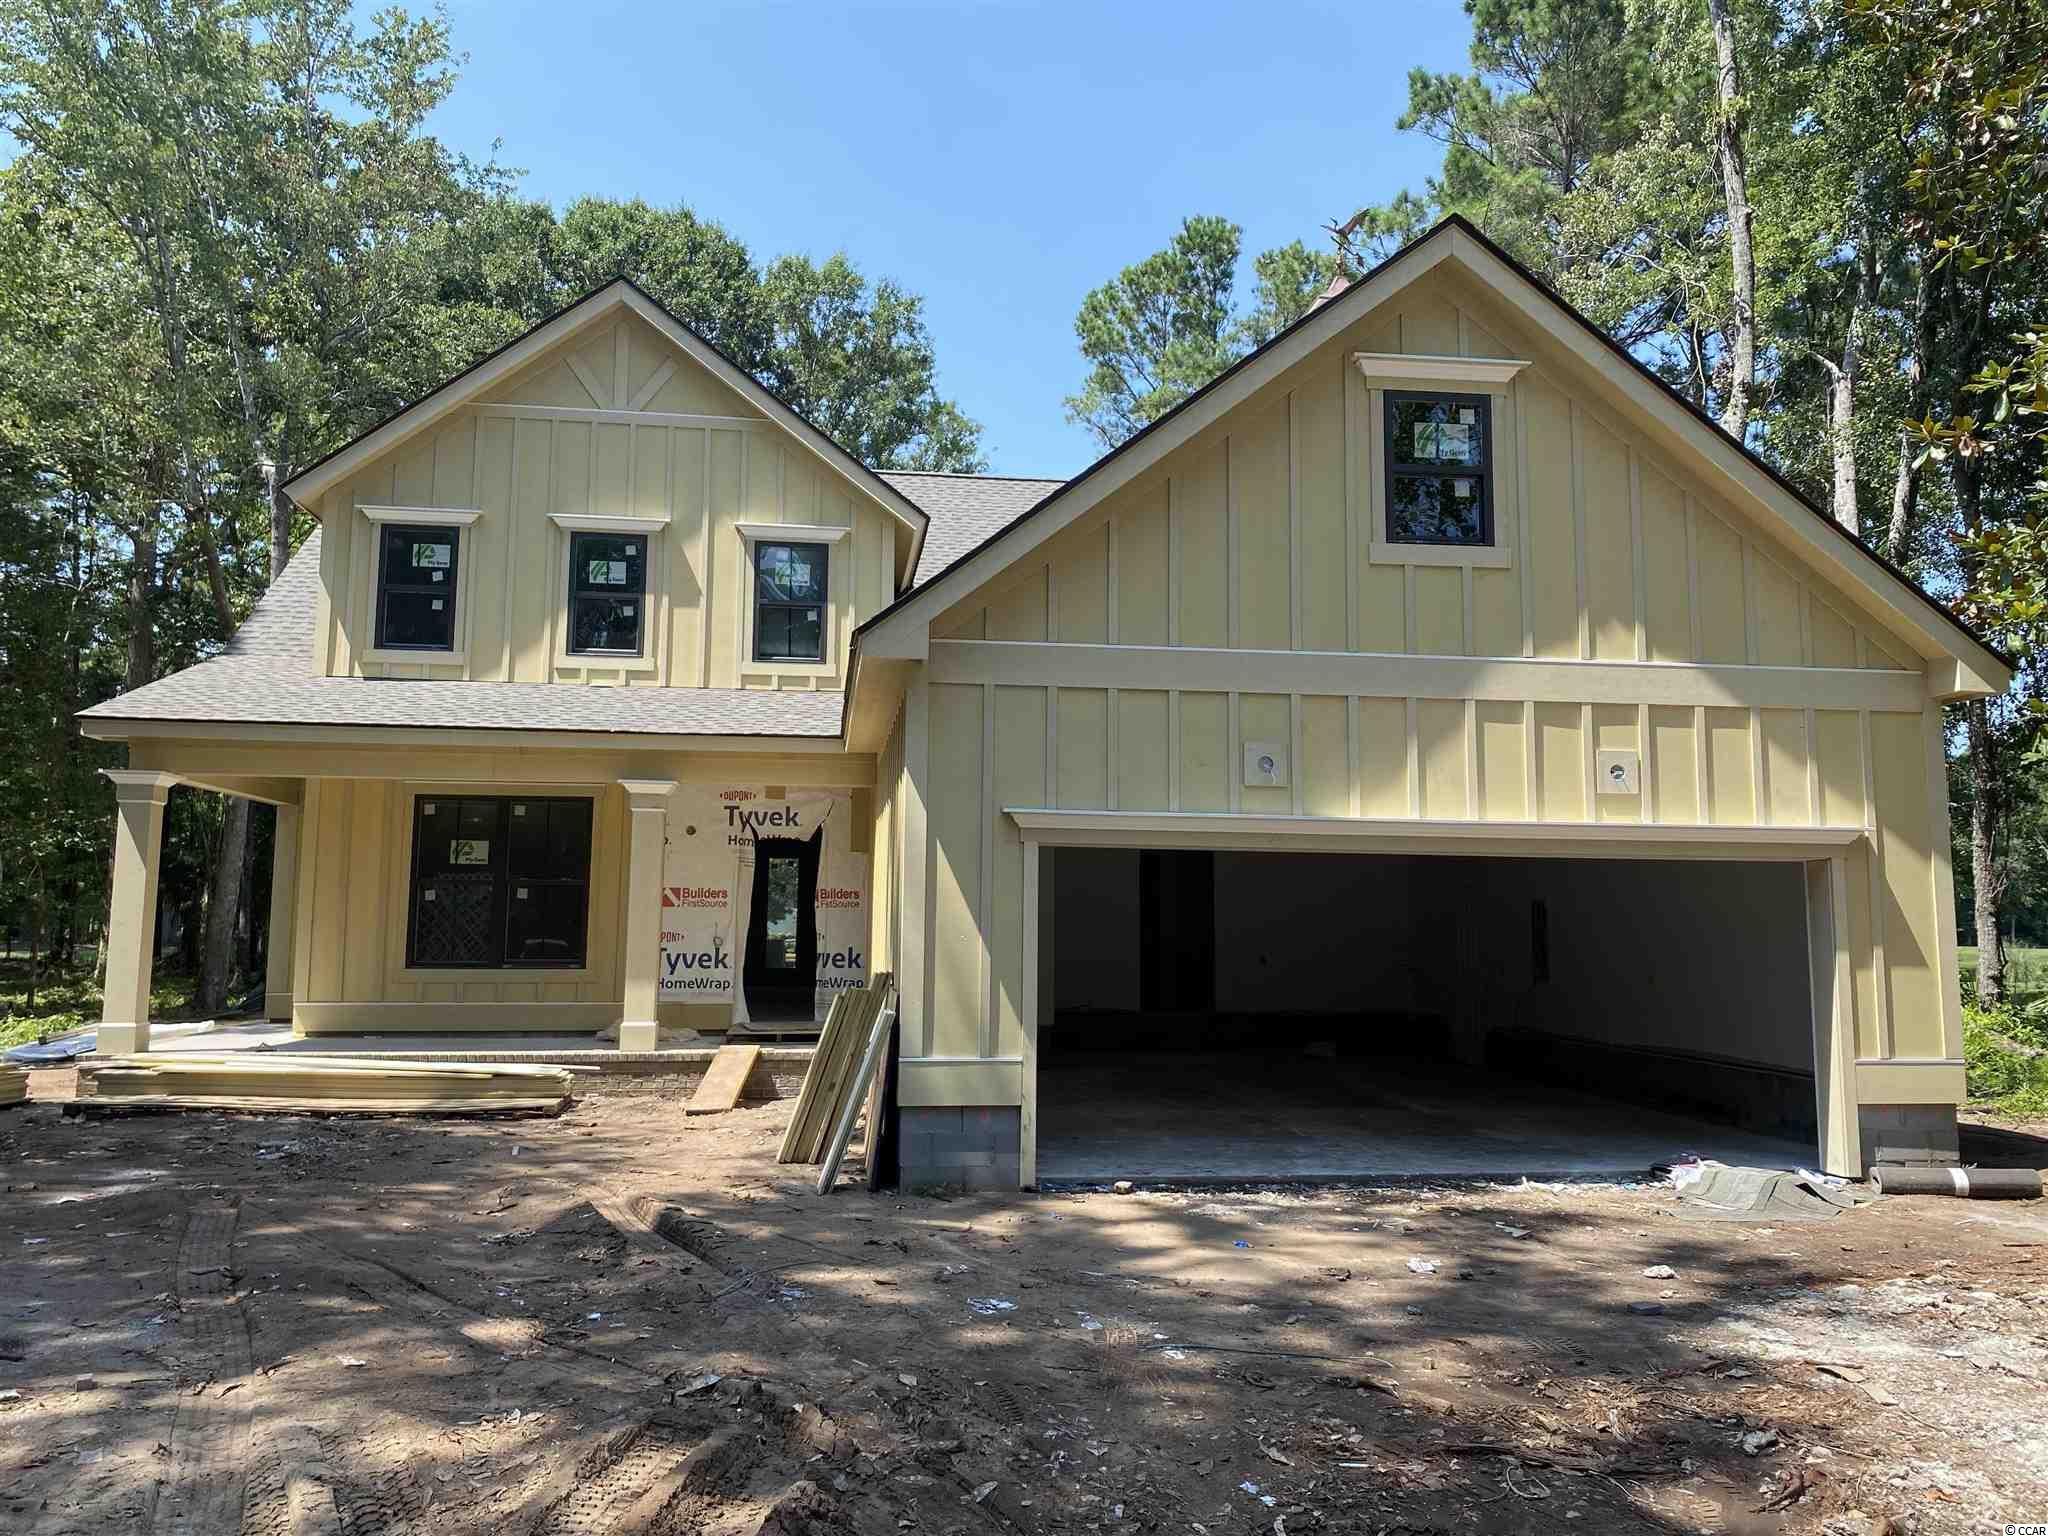 Think Southern Living...think Litchfield Plantation and this Low Country Home being built by the Southern Living Preferred Builder Member for the Grand Stand. This low country home is two story with the Owner's Suite on the First level AND a flex space that can be a second bedroom or office on the main level. Second floor has two spacious bedrooms with their own bathrooms and walk in closets! Open floorplan concept with a large covered porch that includes a gas fireplace! Great for entertaining or spending those Carolina nights on the porch for the big game! The Litchfield Plantation amenities include a beautiful swimming pool on the marsh, large club house, gated security and best of all its very own beach house on the island!!  Welcome home to Litchfield Plantation, Pawleys Island, SC! (Pictures are from previously built model.)